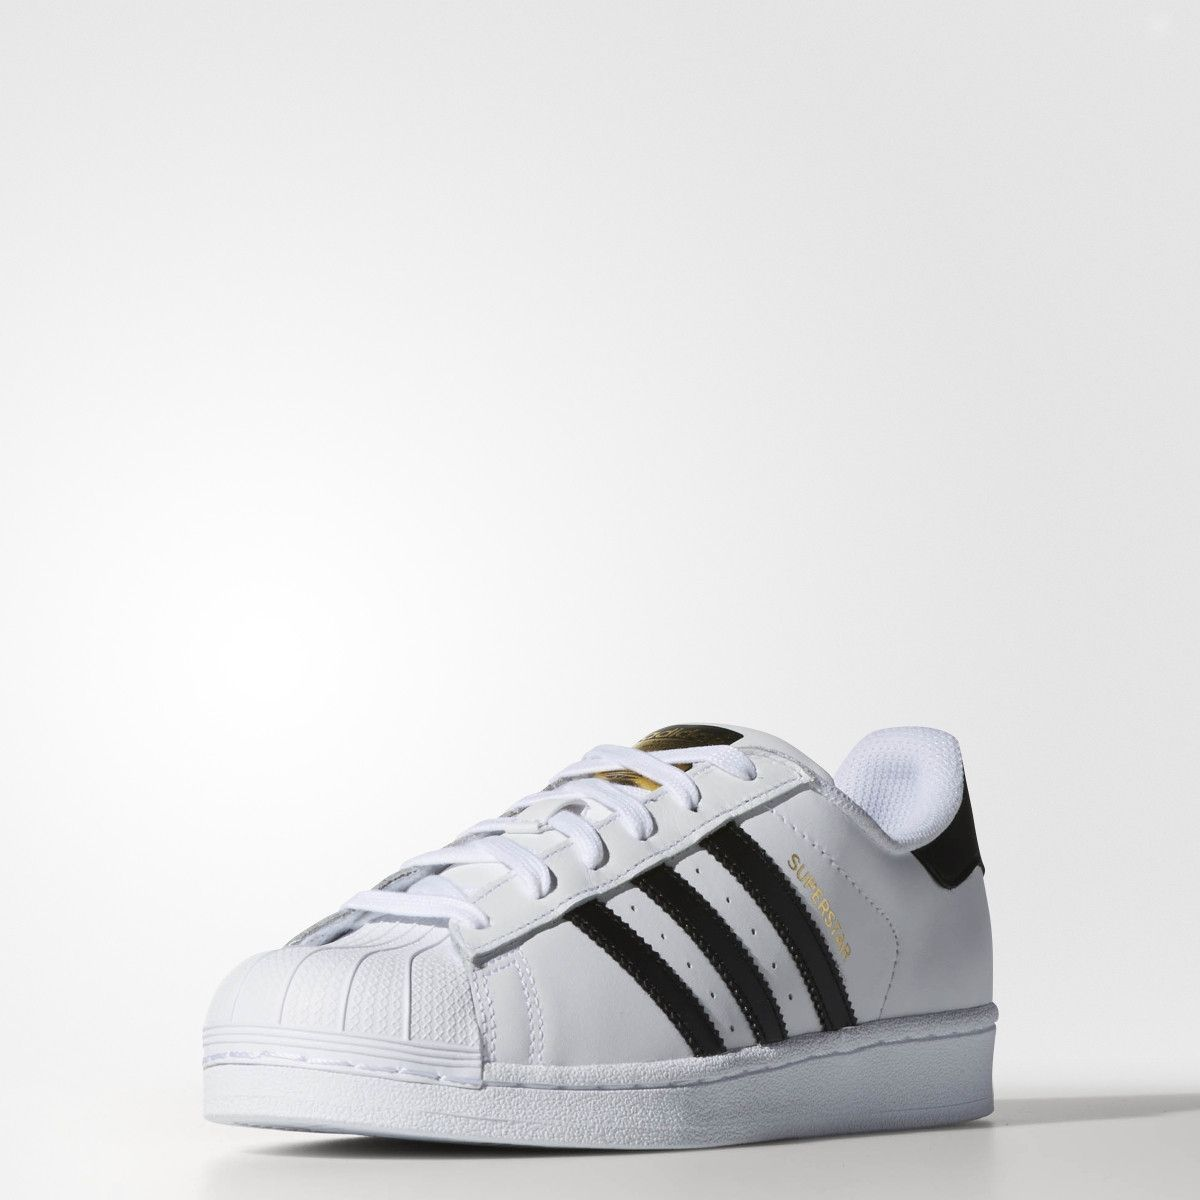 Laid-back and oh-so comfortable, the Women's adidas Superstar Casual Shoes  have